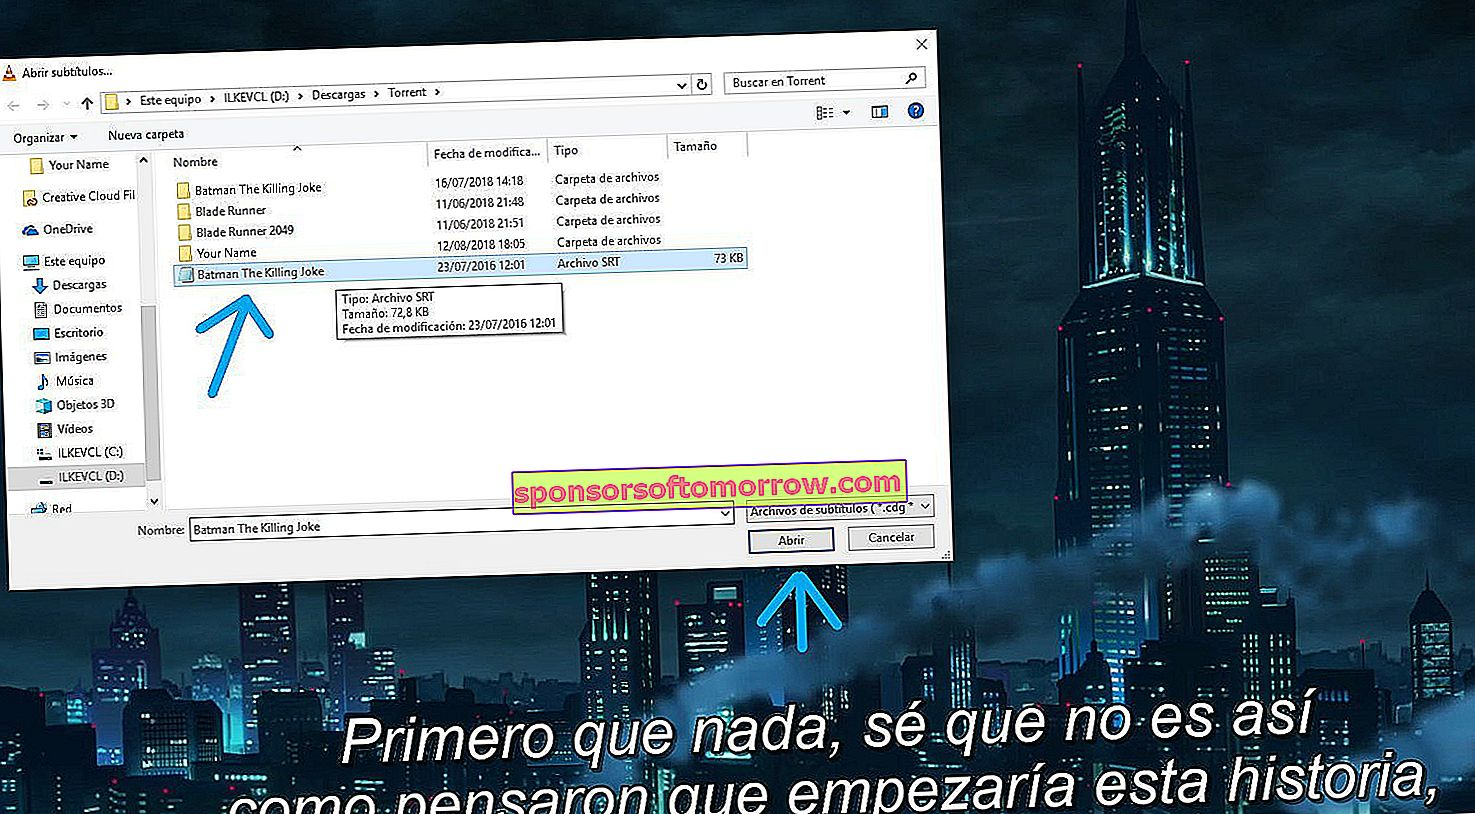 How to fix weird characters that appear in Spanish subtitles